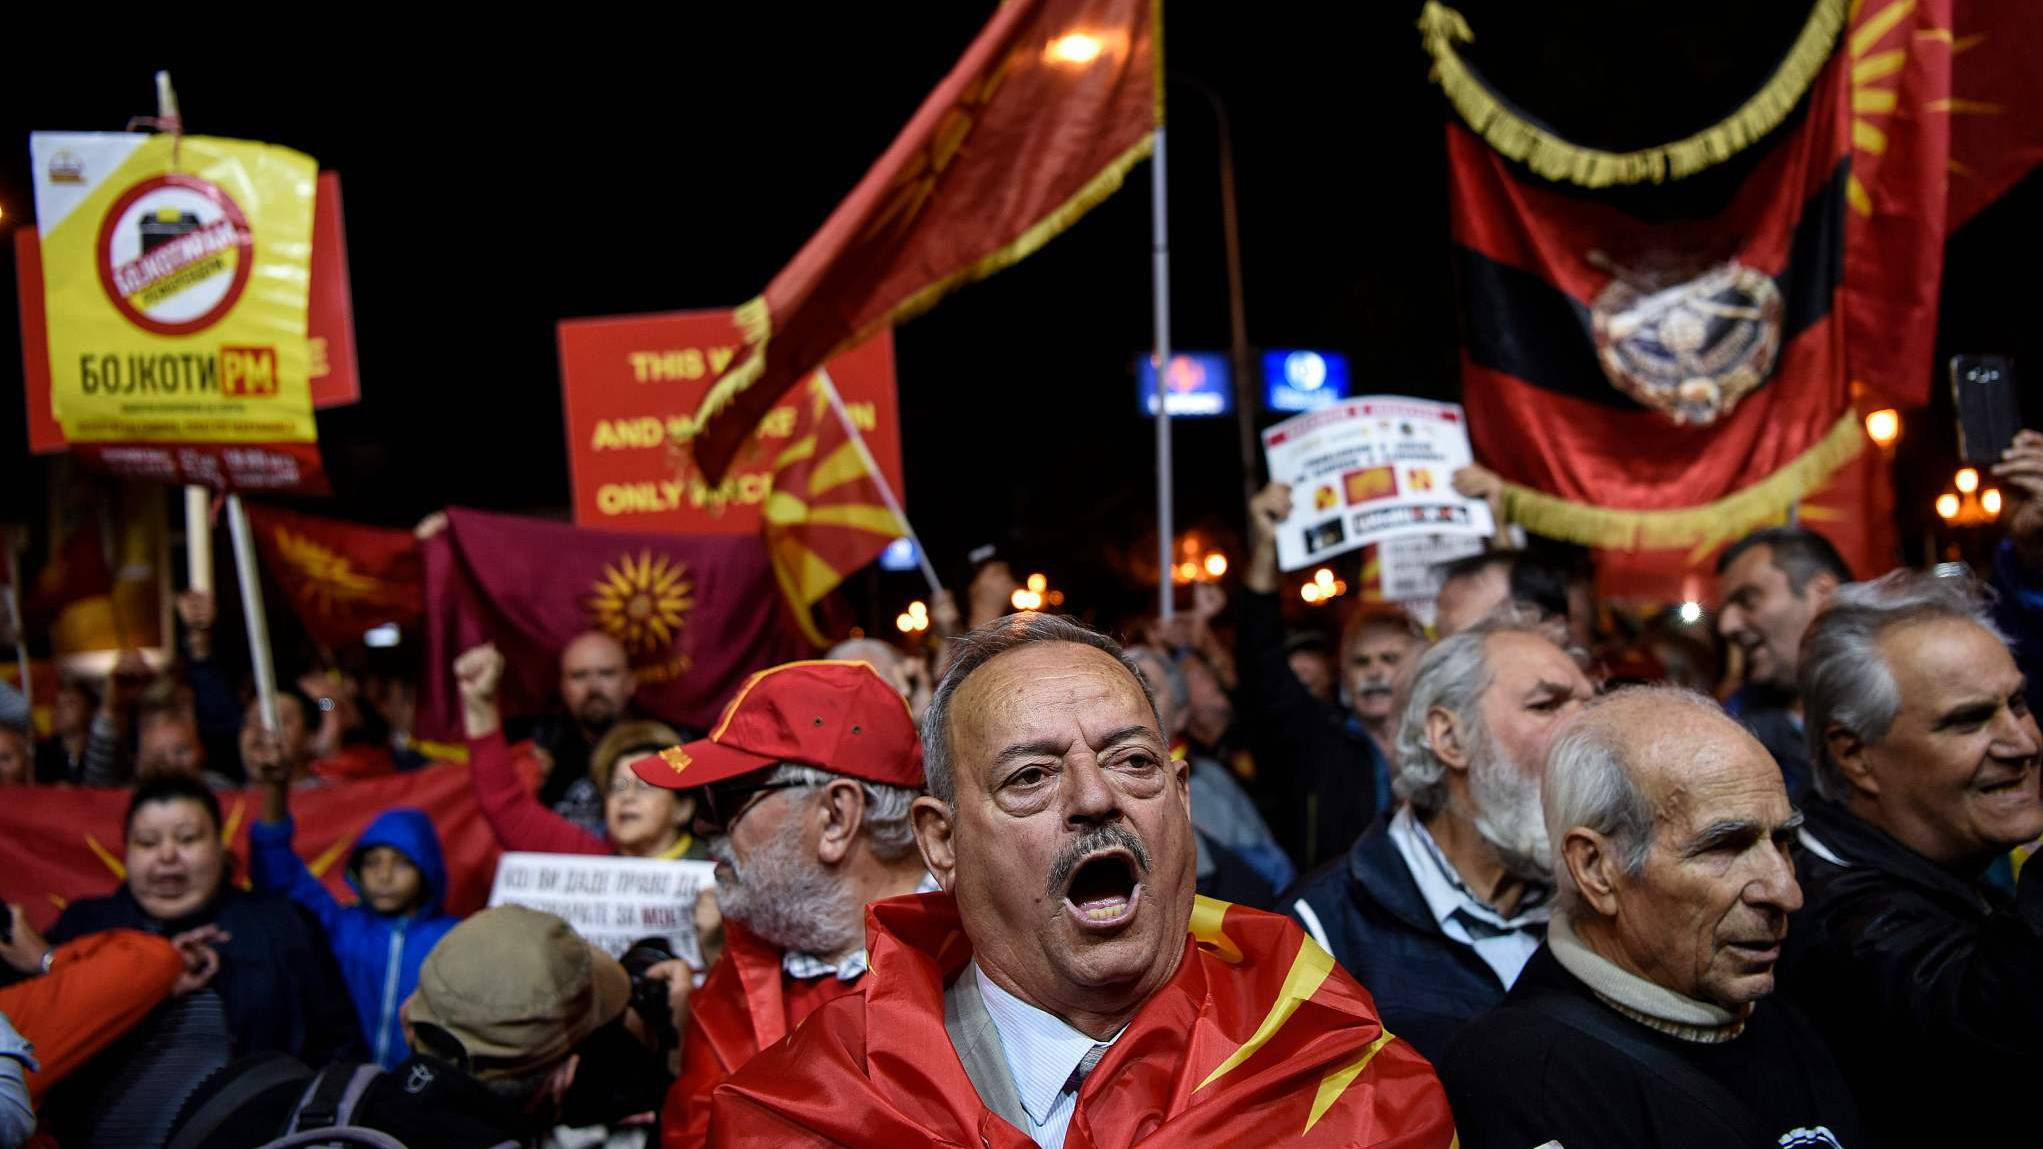 Opinion: Macedonia's referendum: What's in a name?